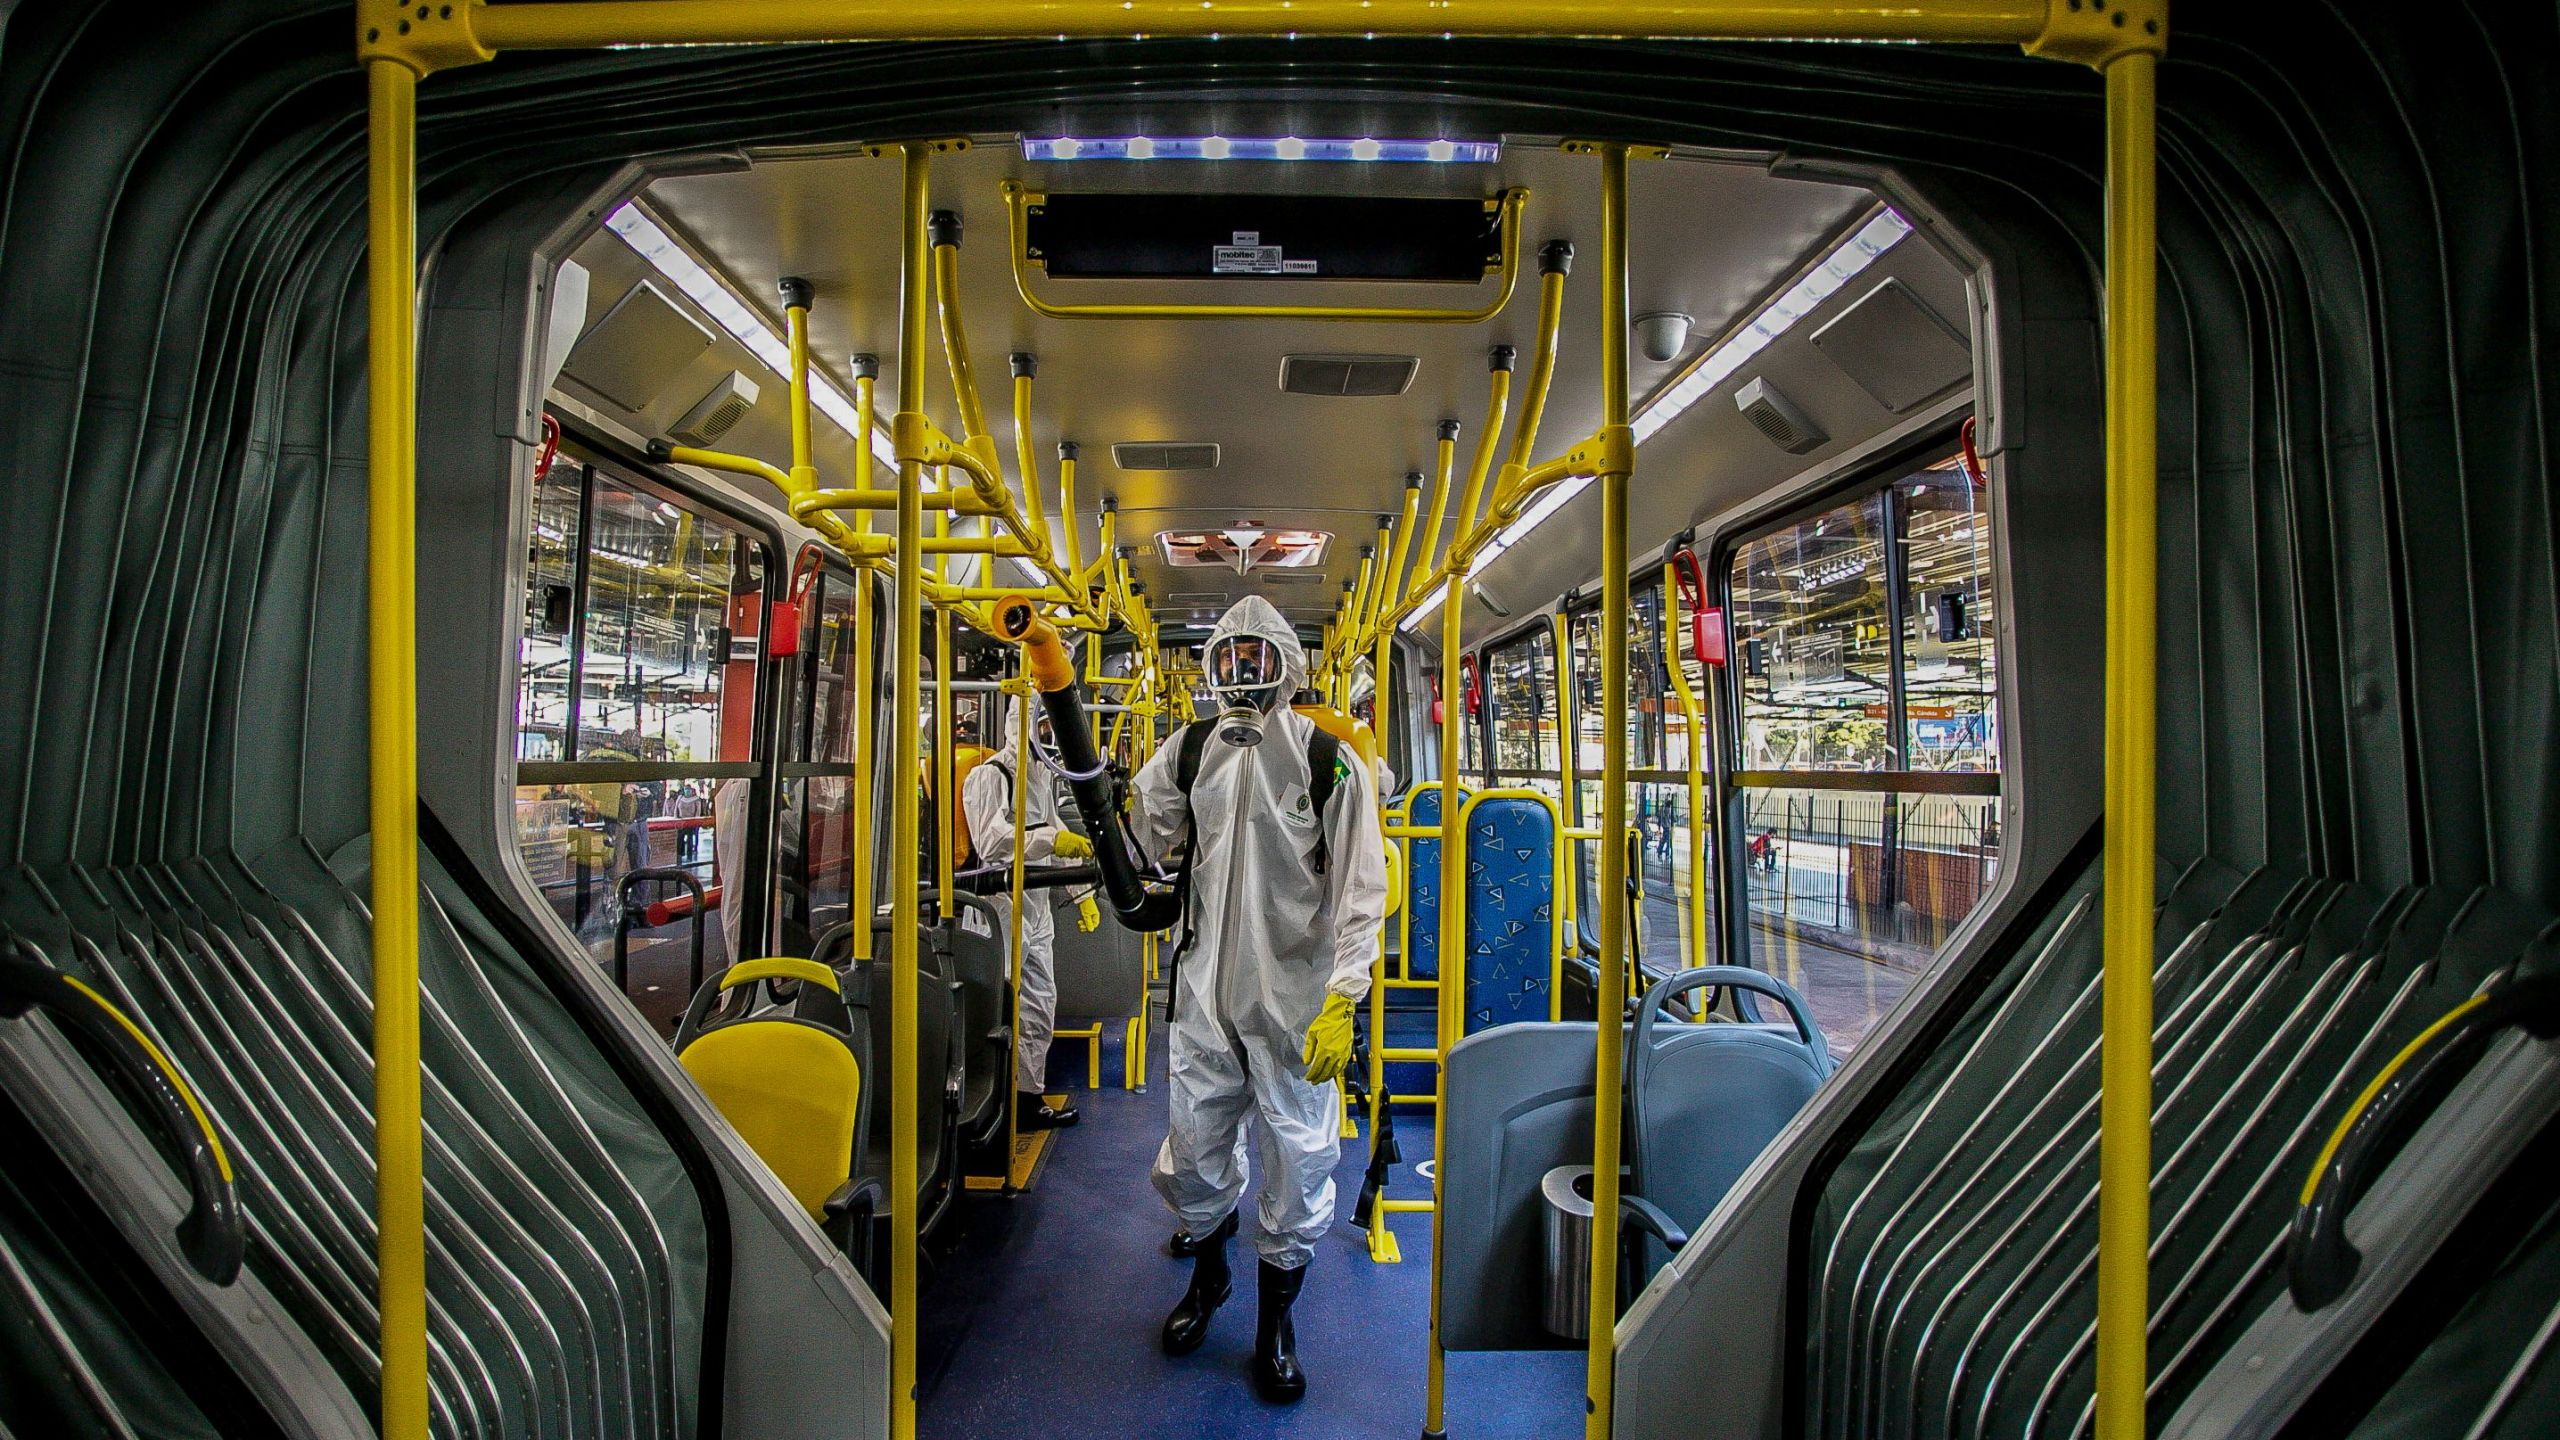 Military personnel from the Brazilian Armed Forces sanitize a bus at the Santa Candida bus terminal to combat the spread of the the novel coronavirus, COVID-19, in Curitiba, Parana State, Brazil, on August 10, 2020. (DANIEL CASTELLANO/AFP via Getty Images)